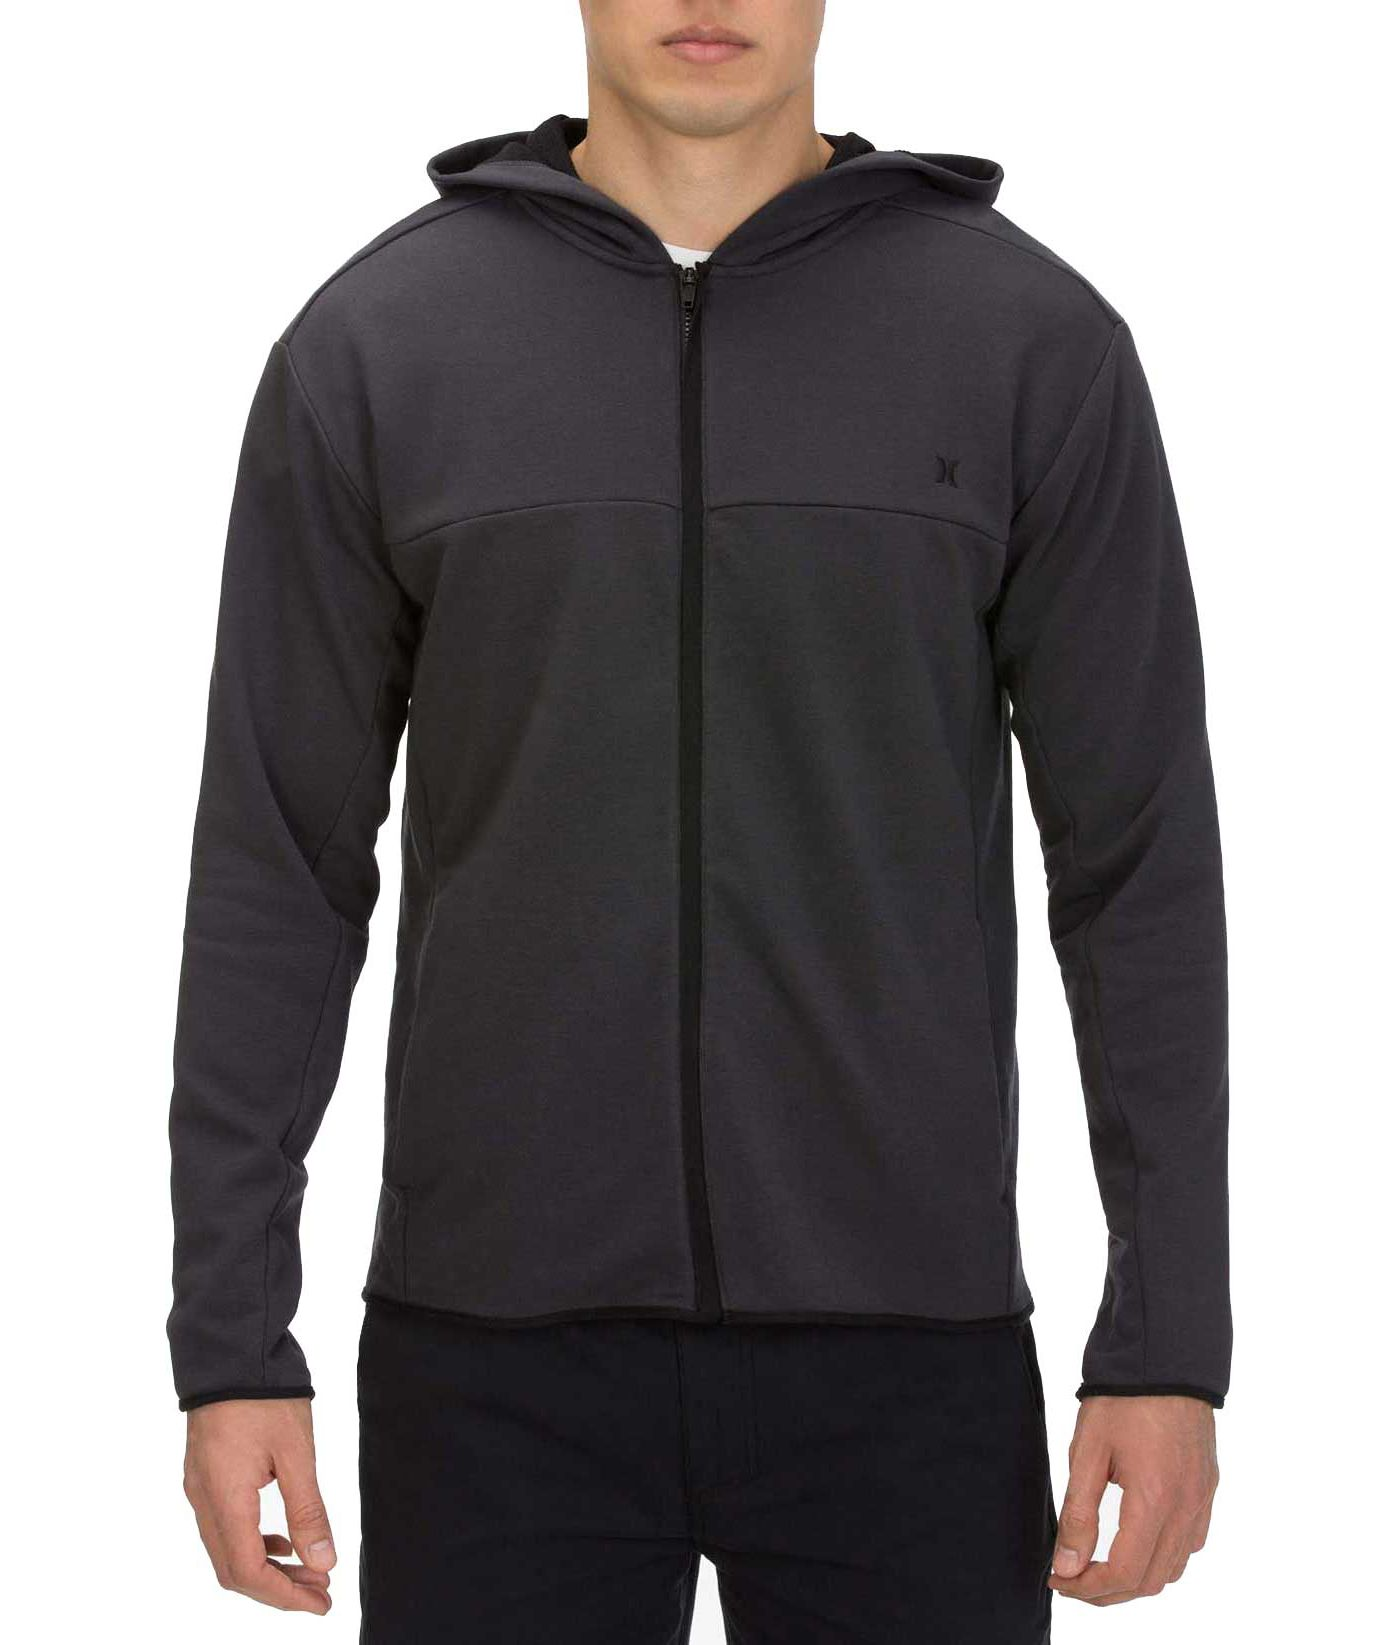 Hurley Men's Dri-FIT Naturals Full Zip Hoodie